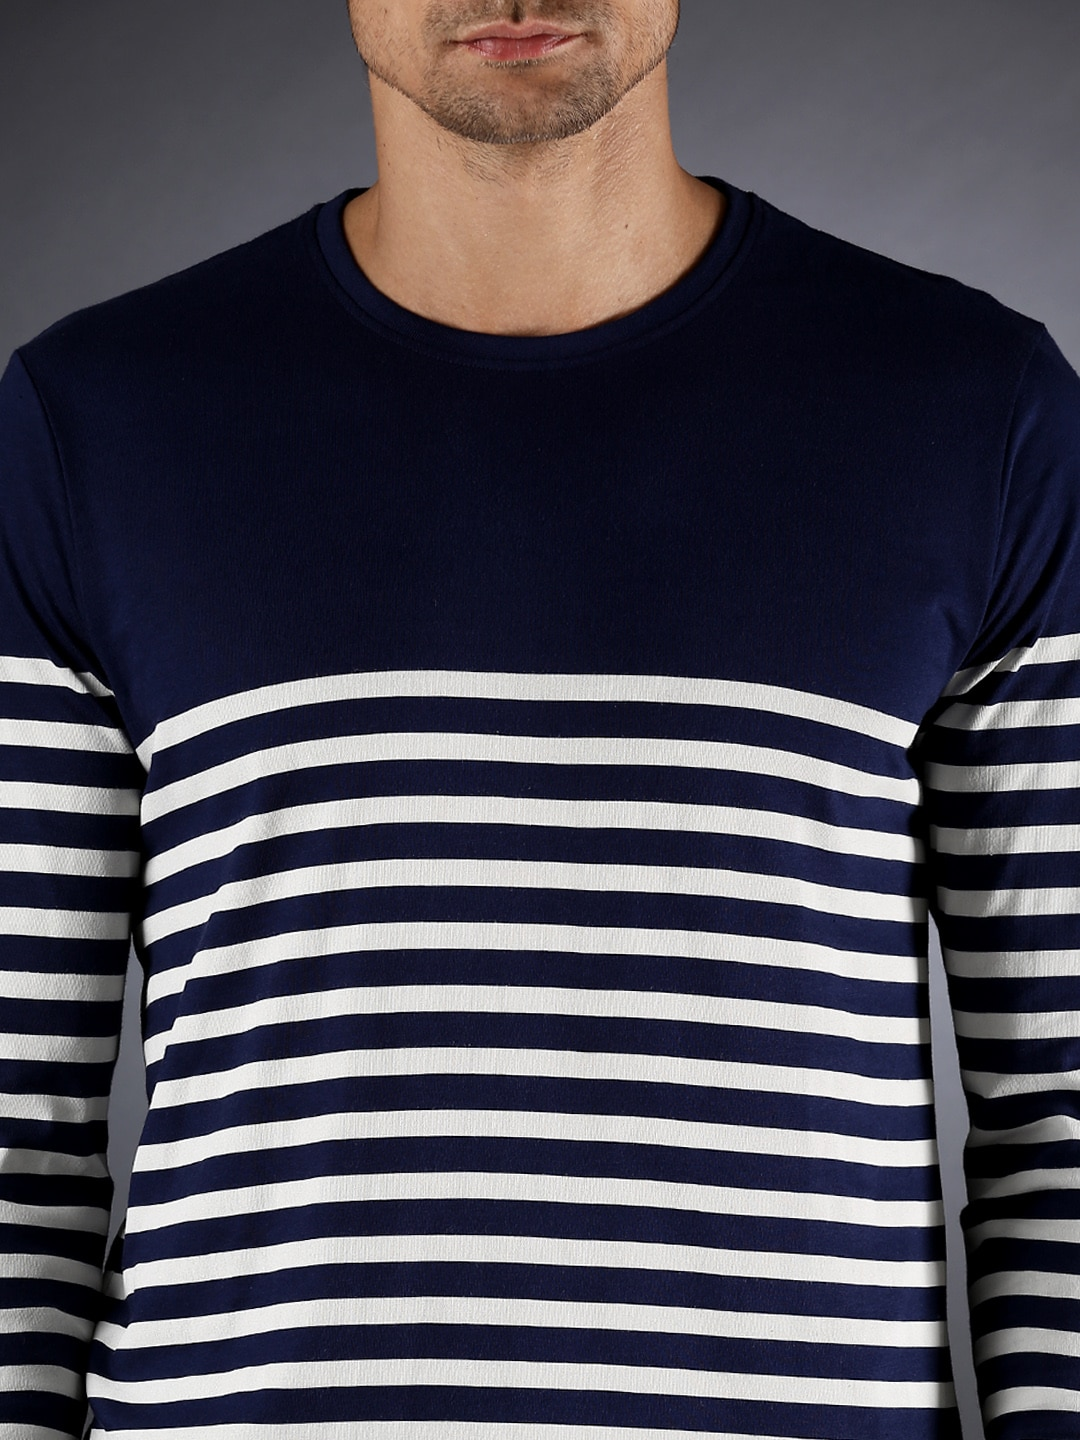 Black and white striped t shirt xxl - Long Sleeve T Shirts For Men Buy Mens Long Sleeve T Shirts Online In India